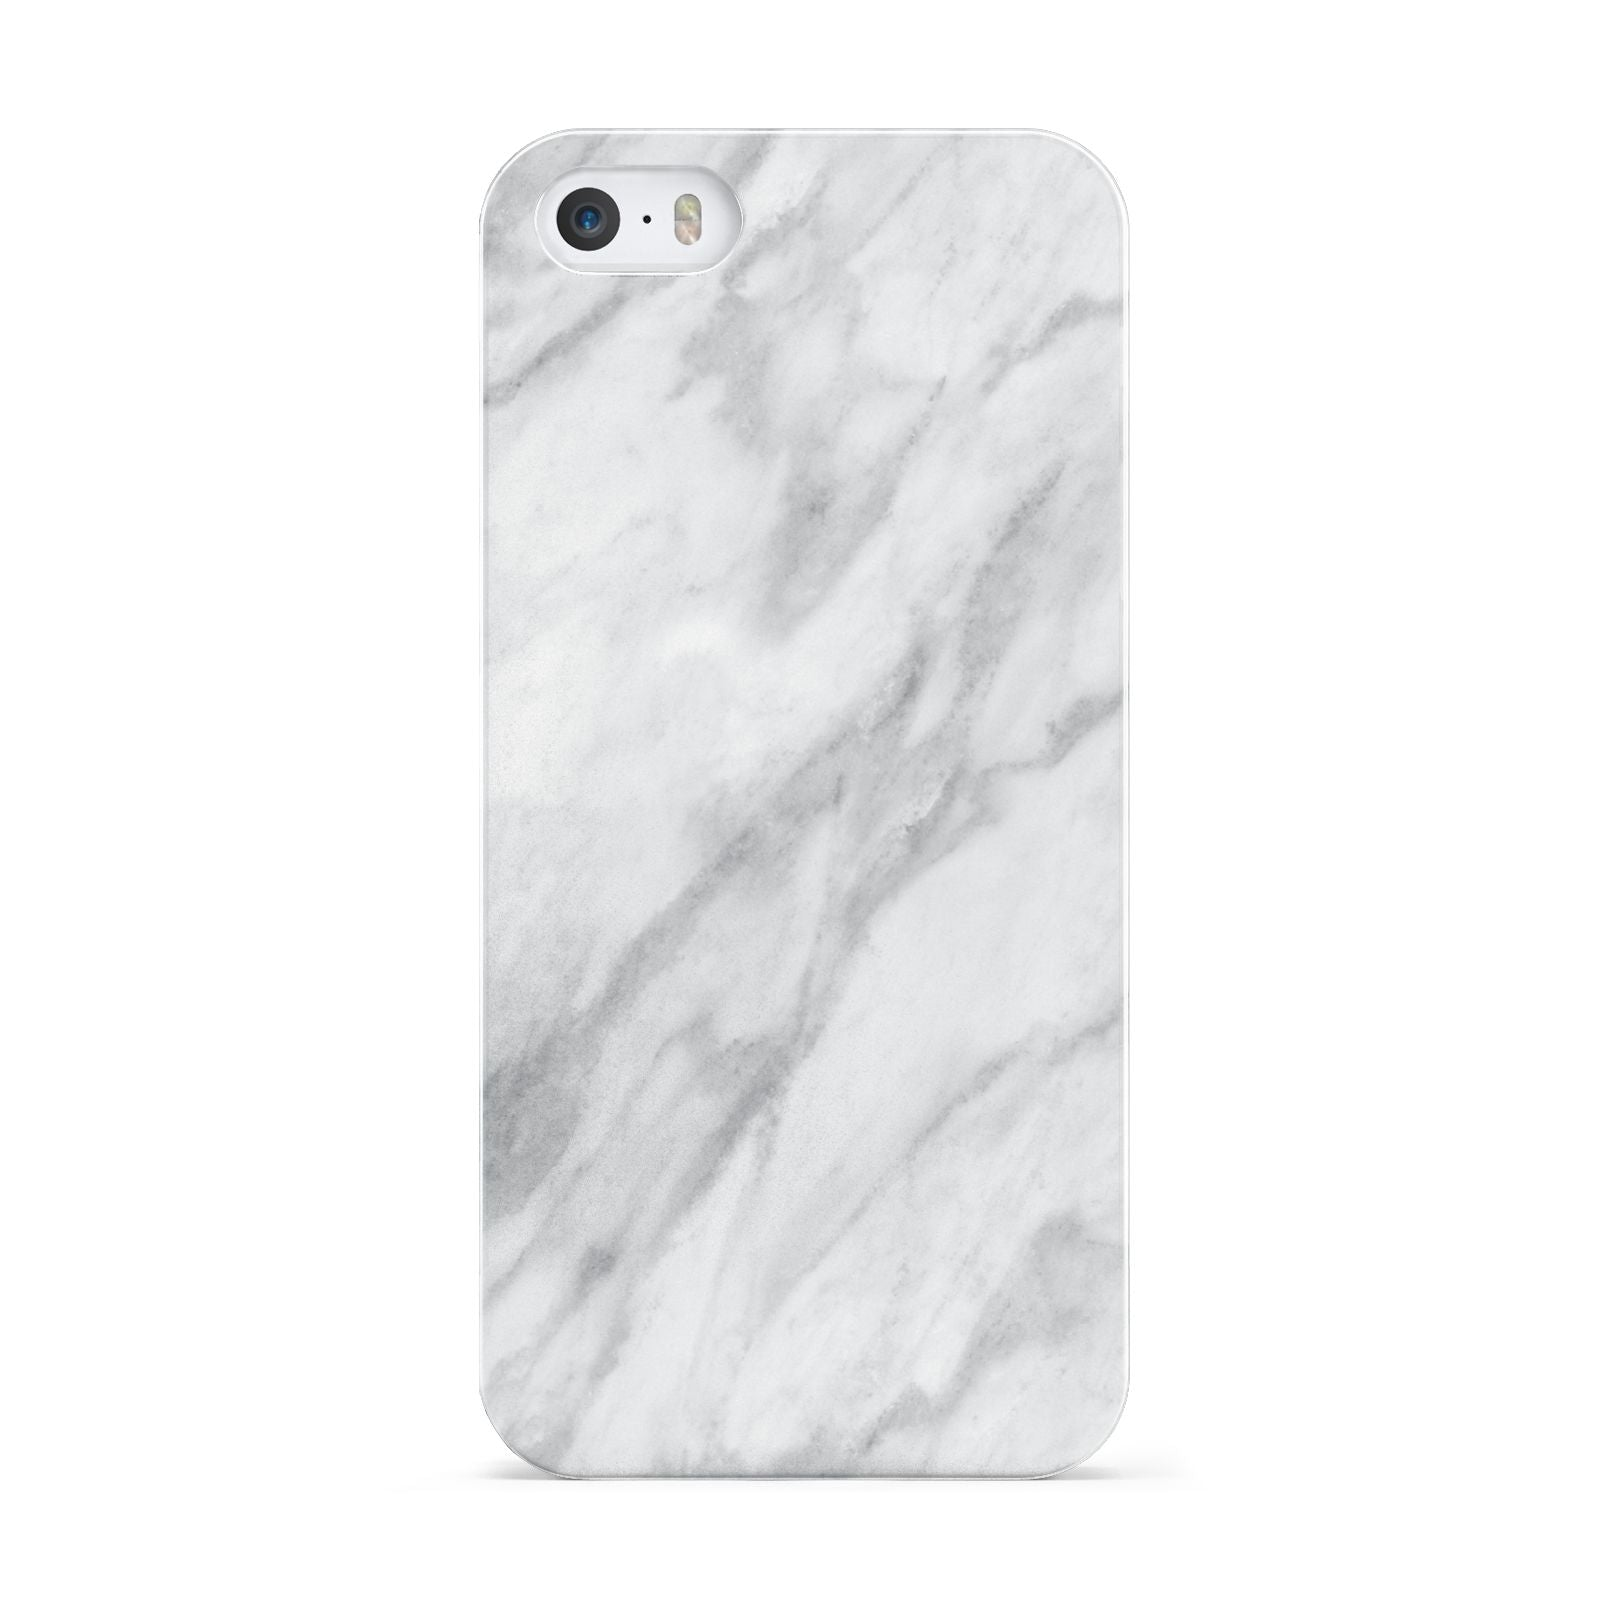 Faux Marble Effect Italian Apple iPhone 5 Case